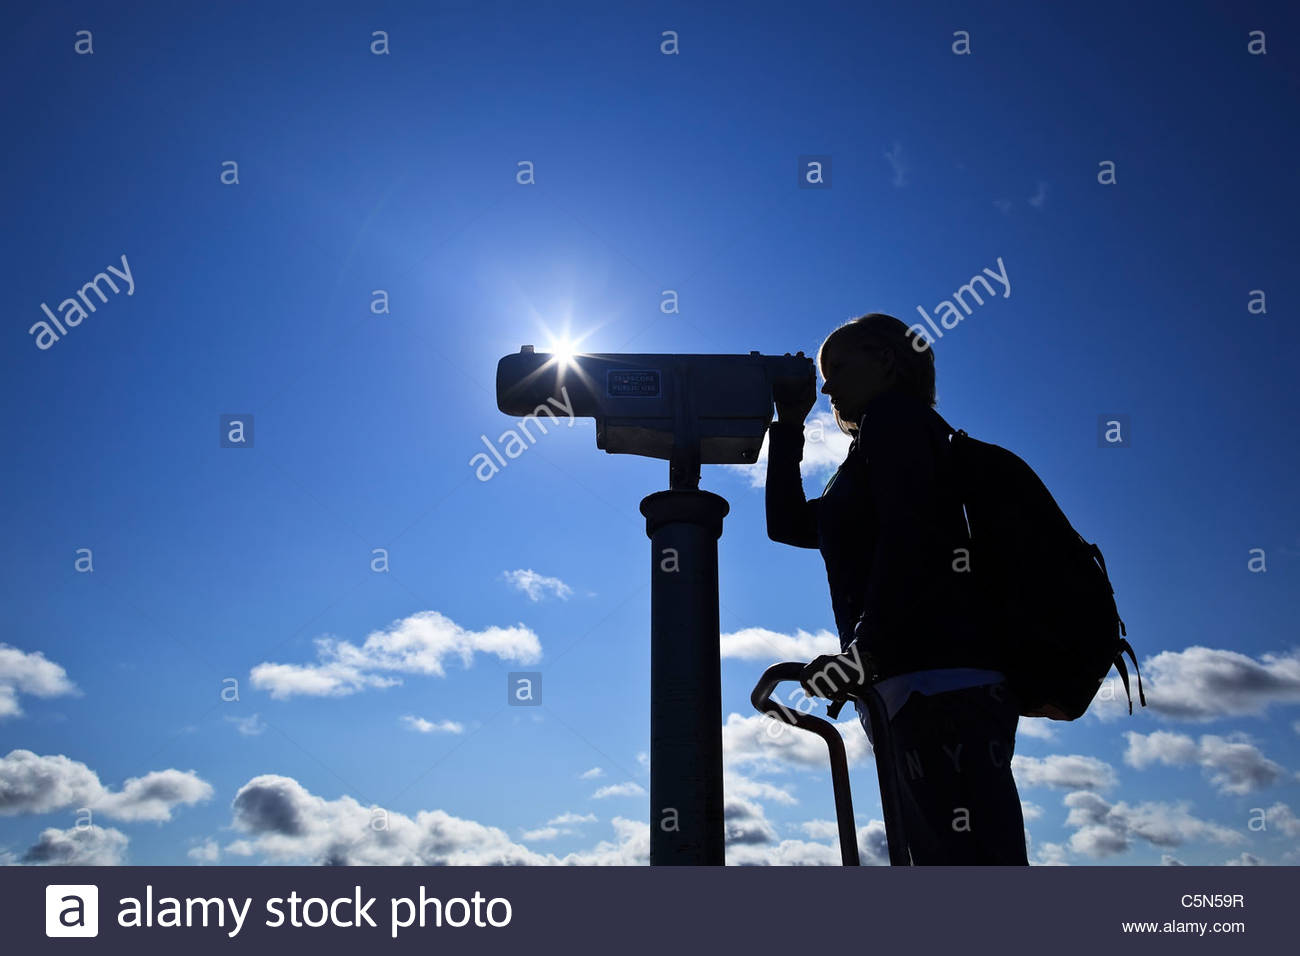 Woman looking through telescope, silhouette. - Stock Image